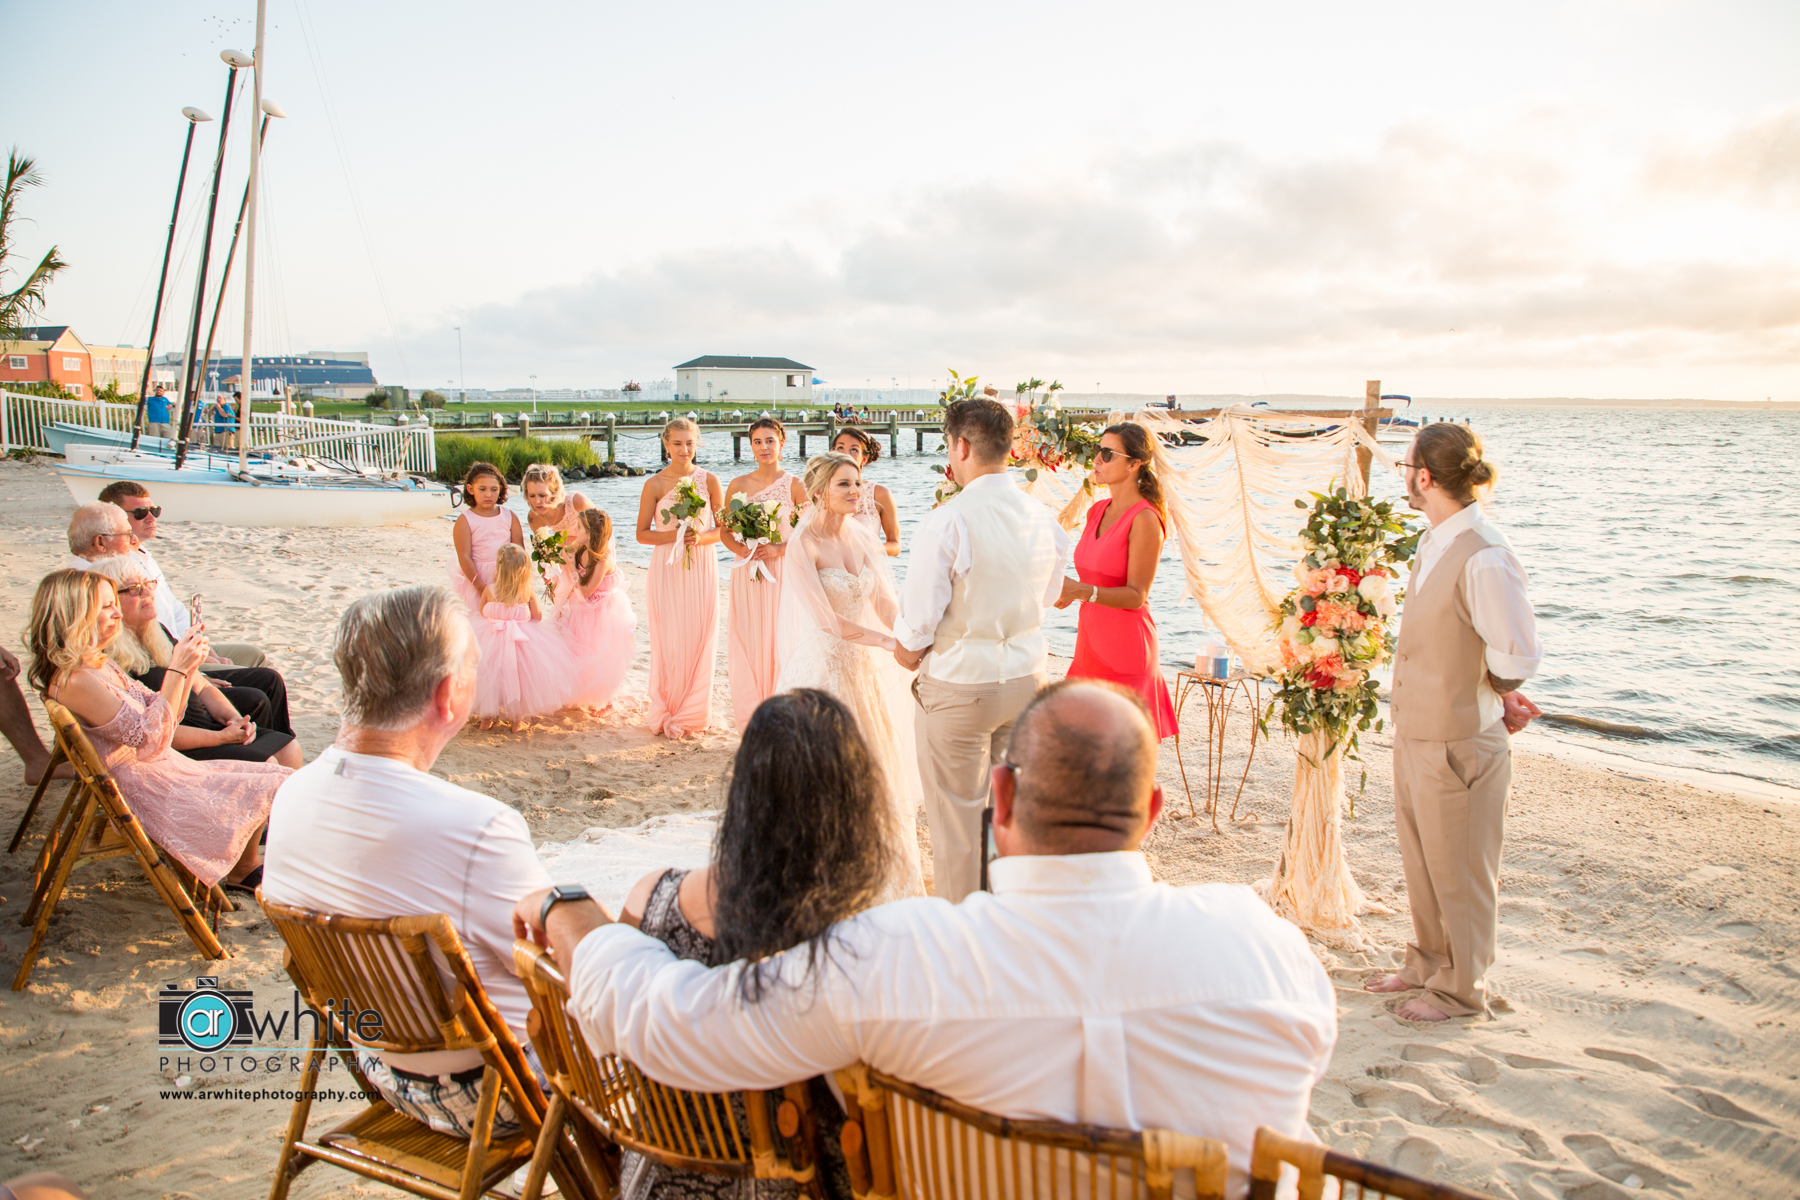 A couple recite their wedding vows on the beach at sunset.